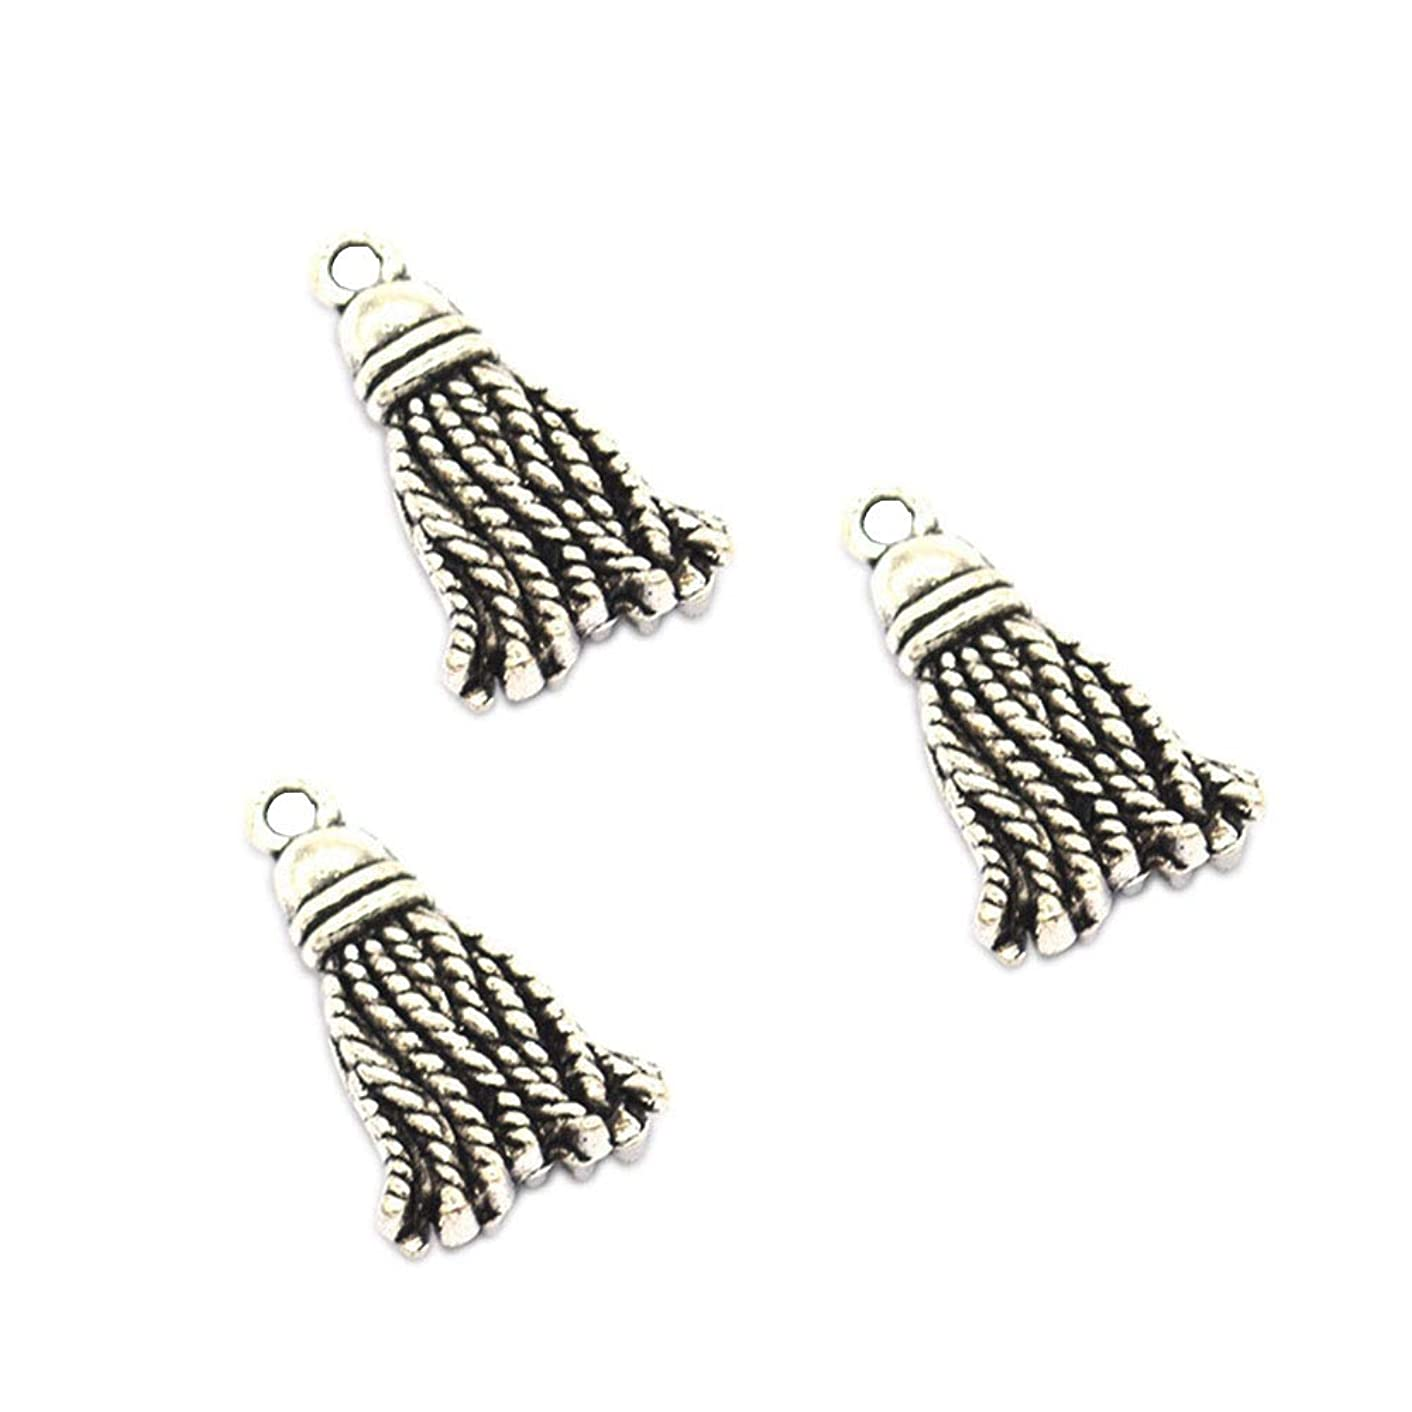 50pcs Vintage Antique Silver Alloy Tassels&Rope Knot Charms Pendant Jewelry Findings for Jewelry Making Necklace Bracelet DIY 20x11mm(50pcs Silver Tassels)